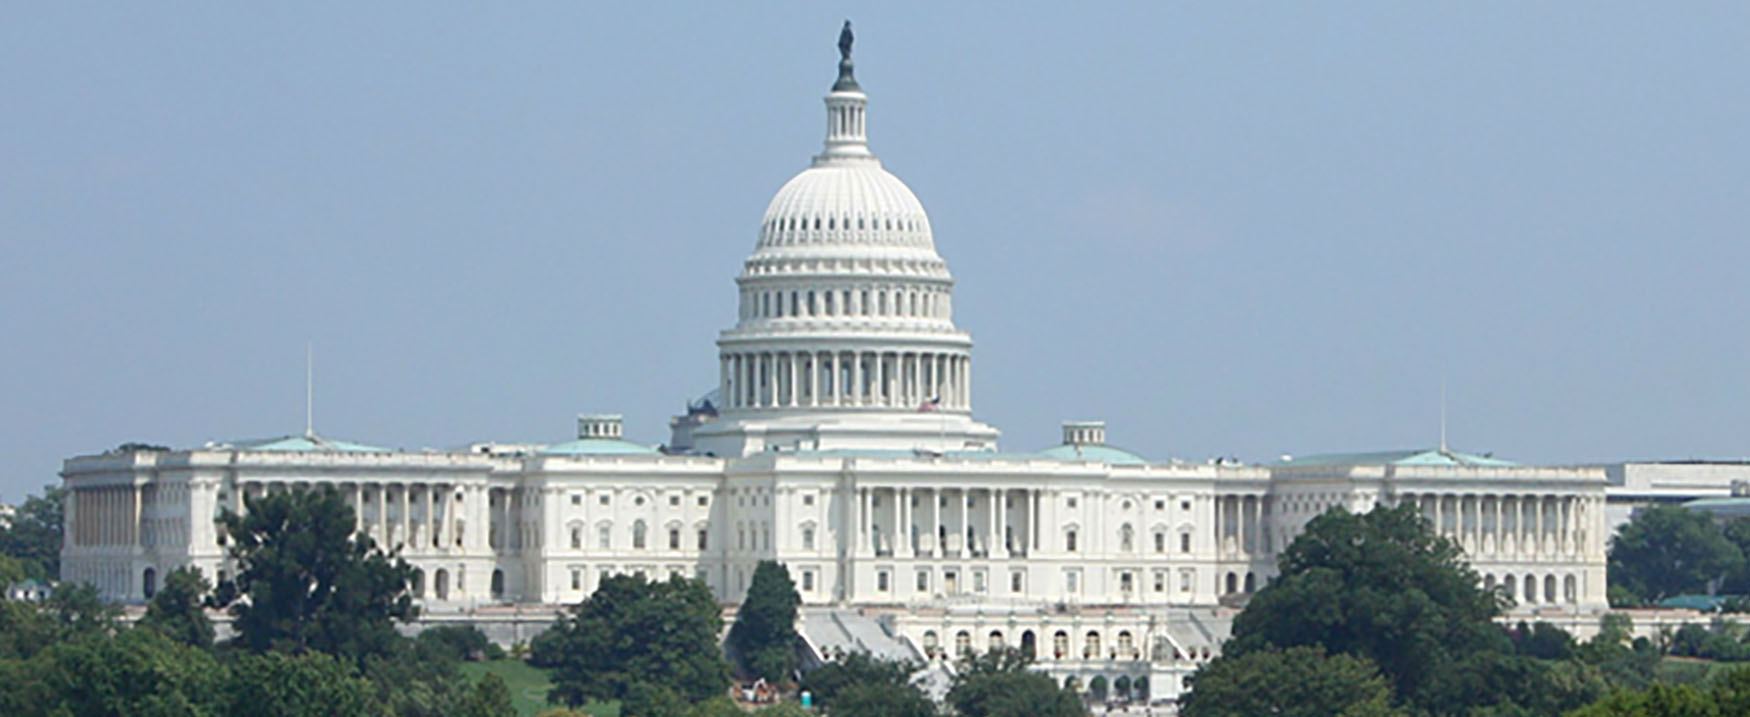 A picture of the United States Capitol Building.